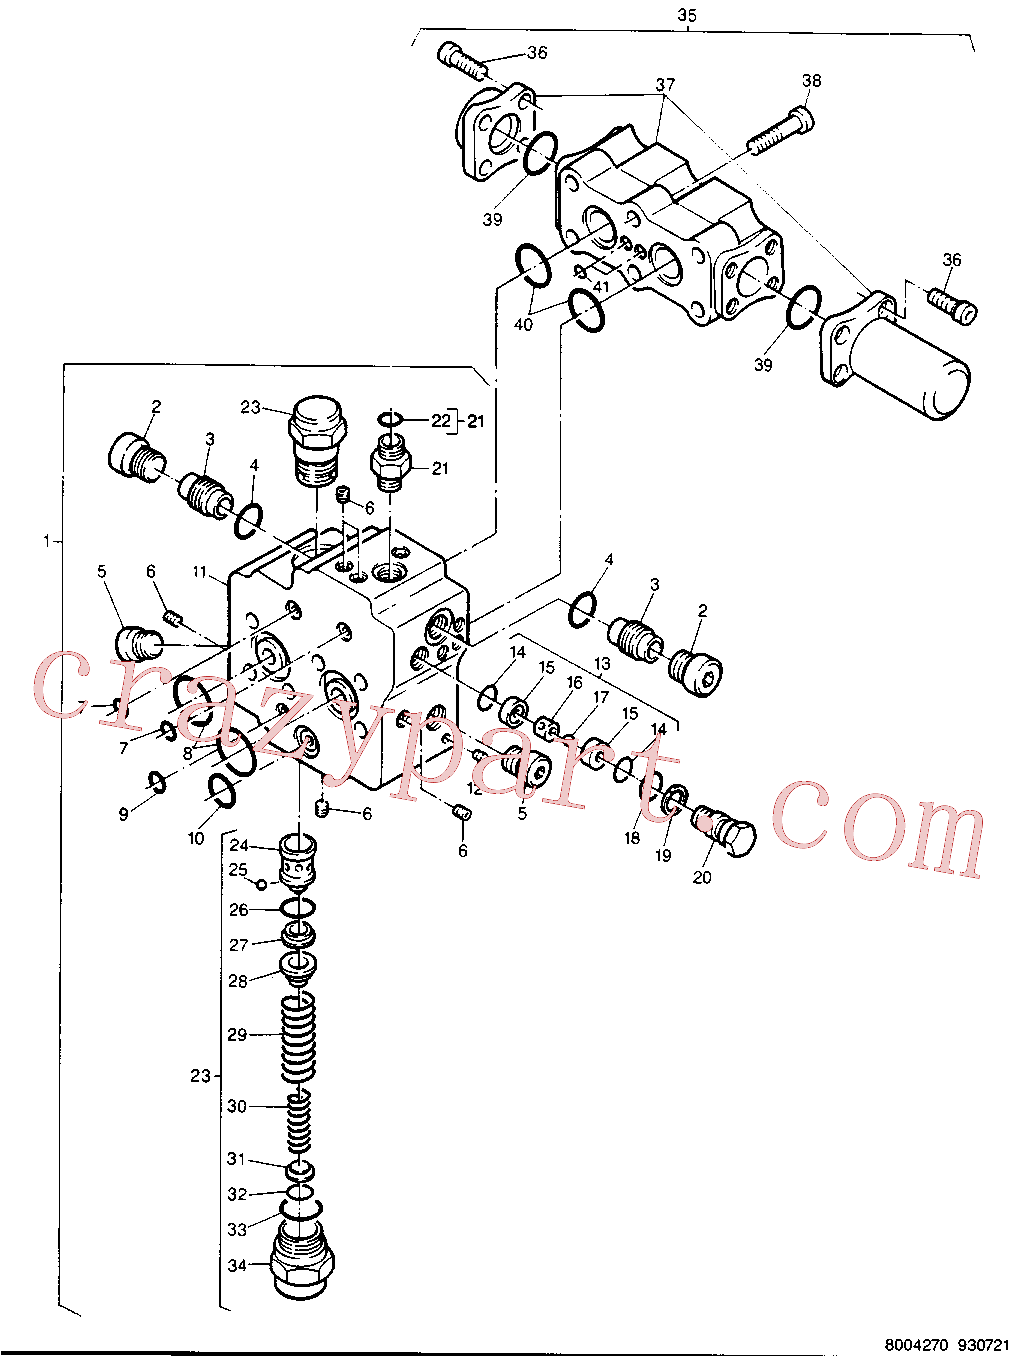 CAT 5W-7482 for 214B FT Excavator(EXC) chassis & undercarriage 8U-2212 Assembly